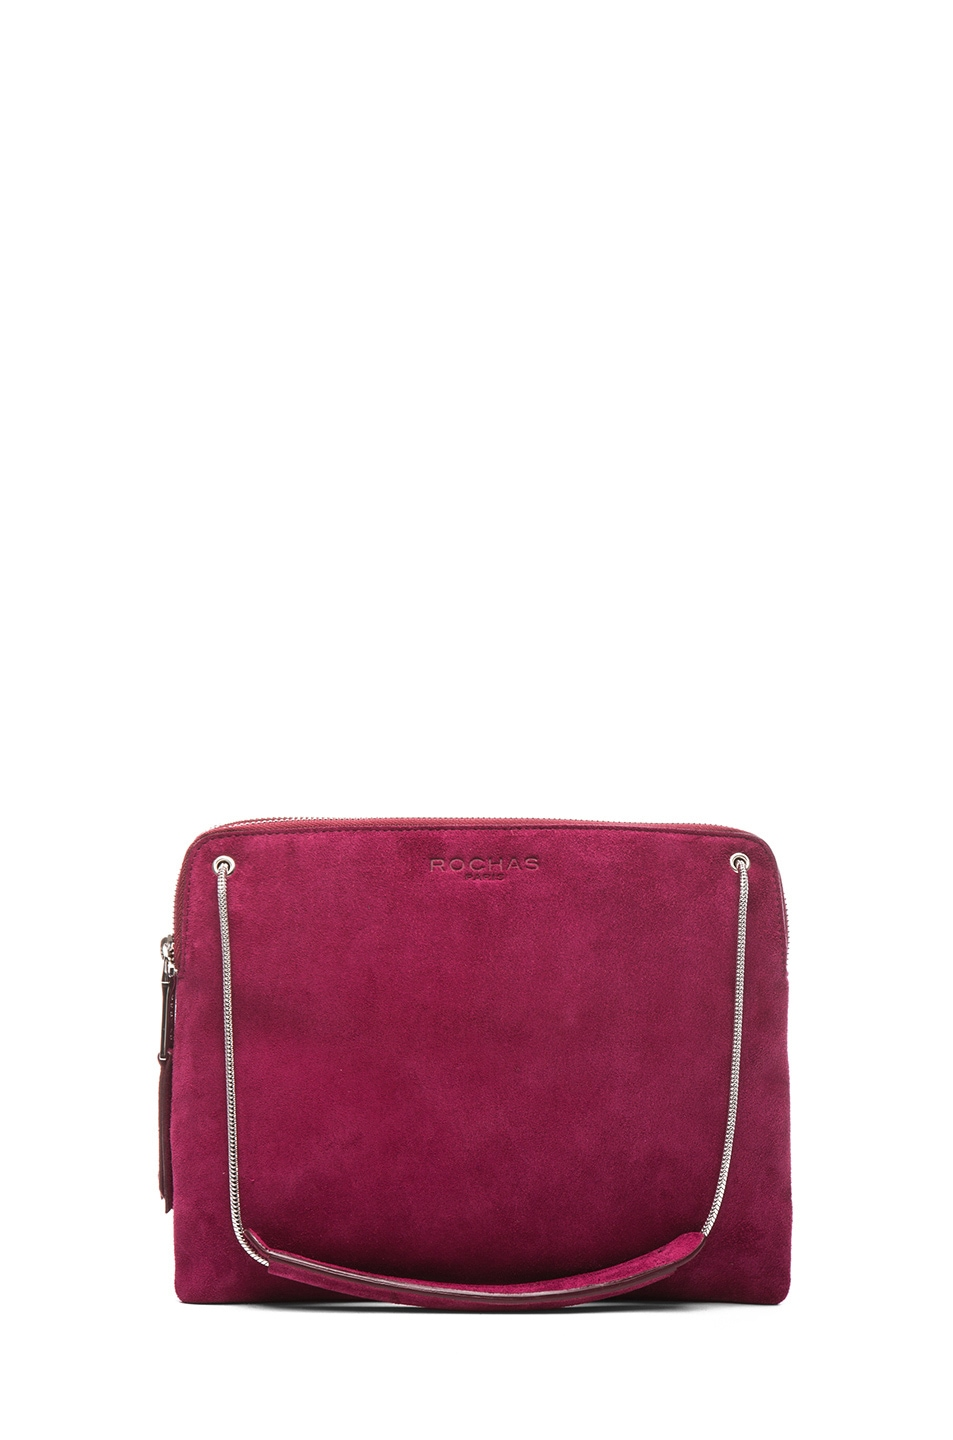 Image 1 of ROCHAS Small Borsa Suede Clutch in Claret